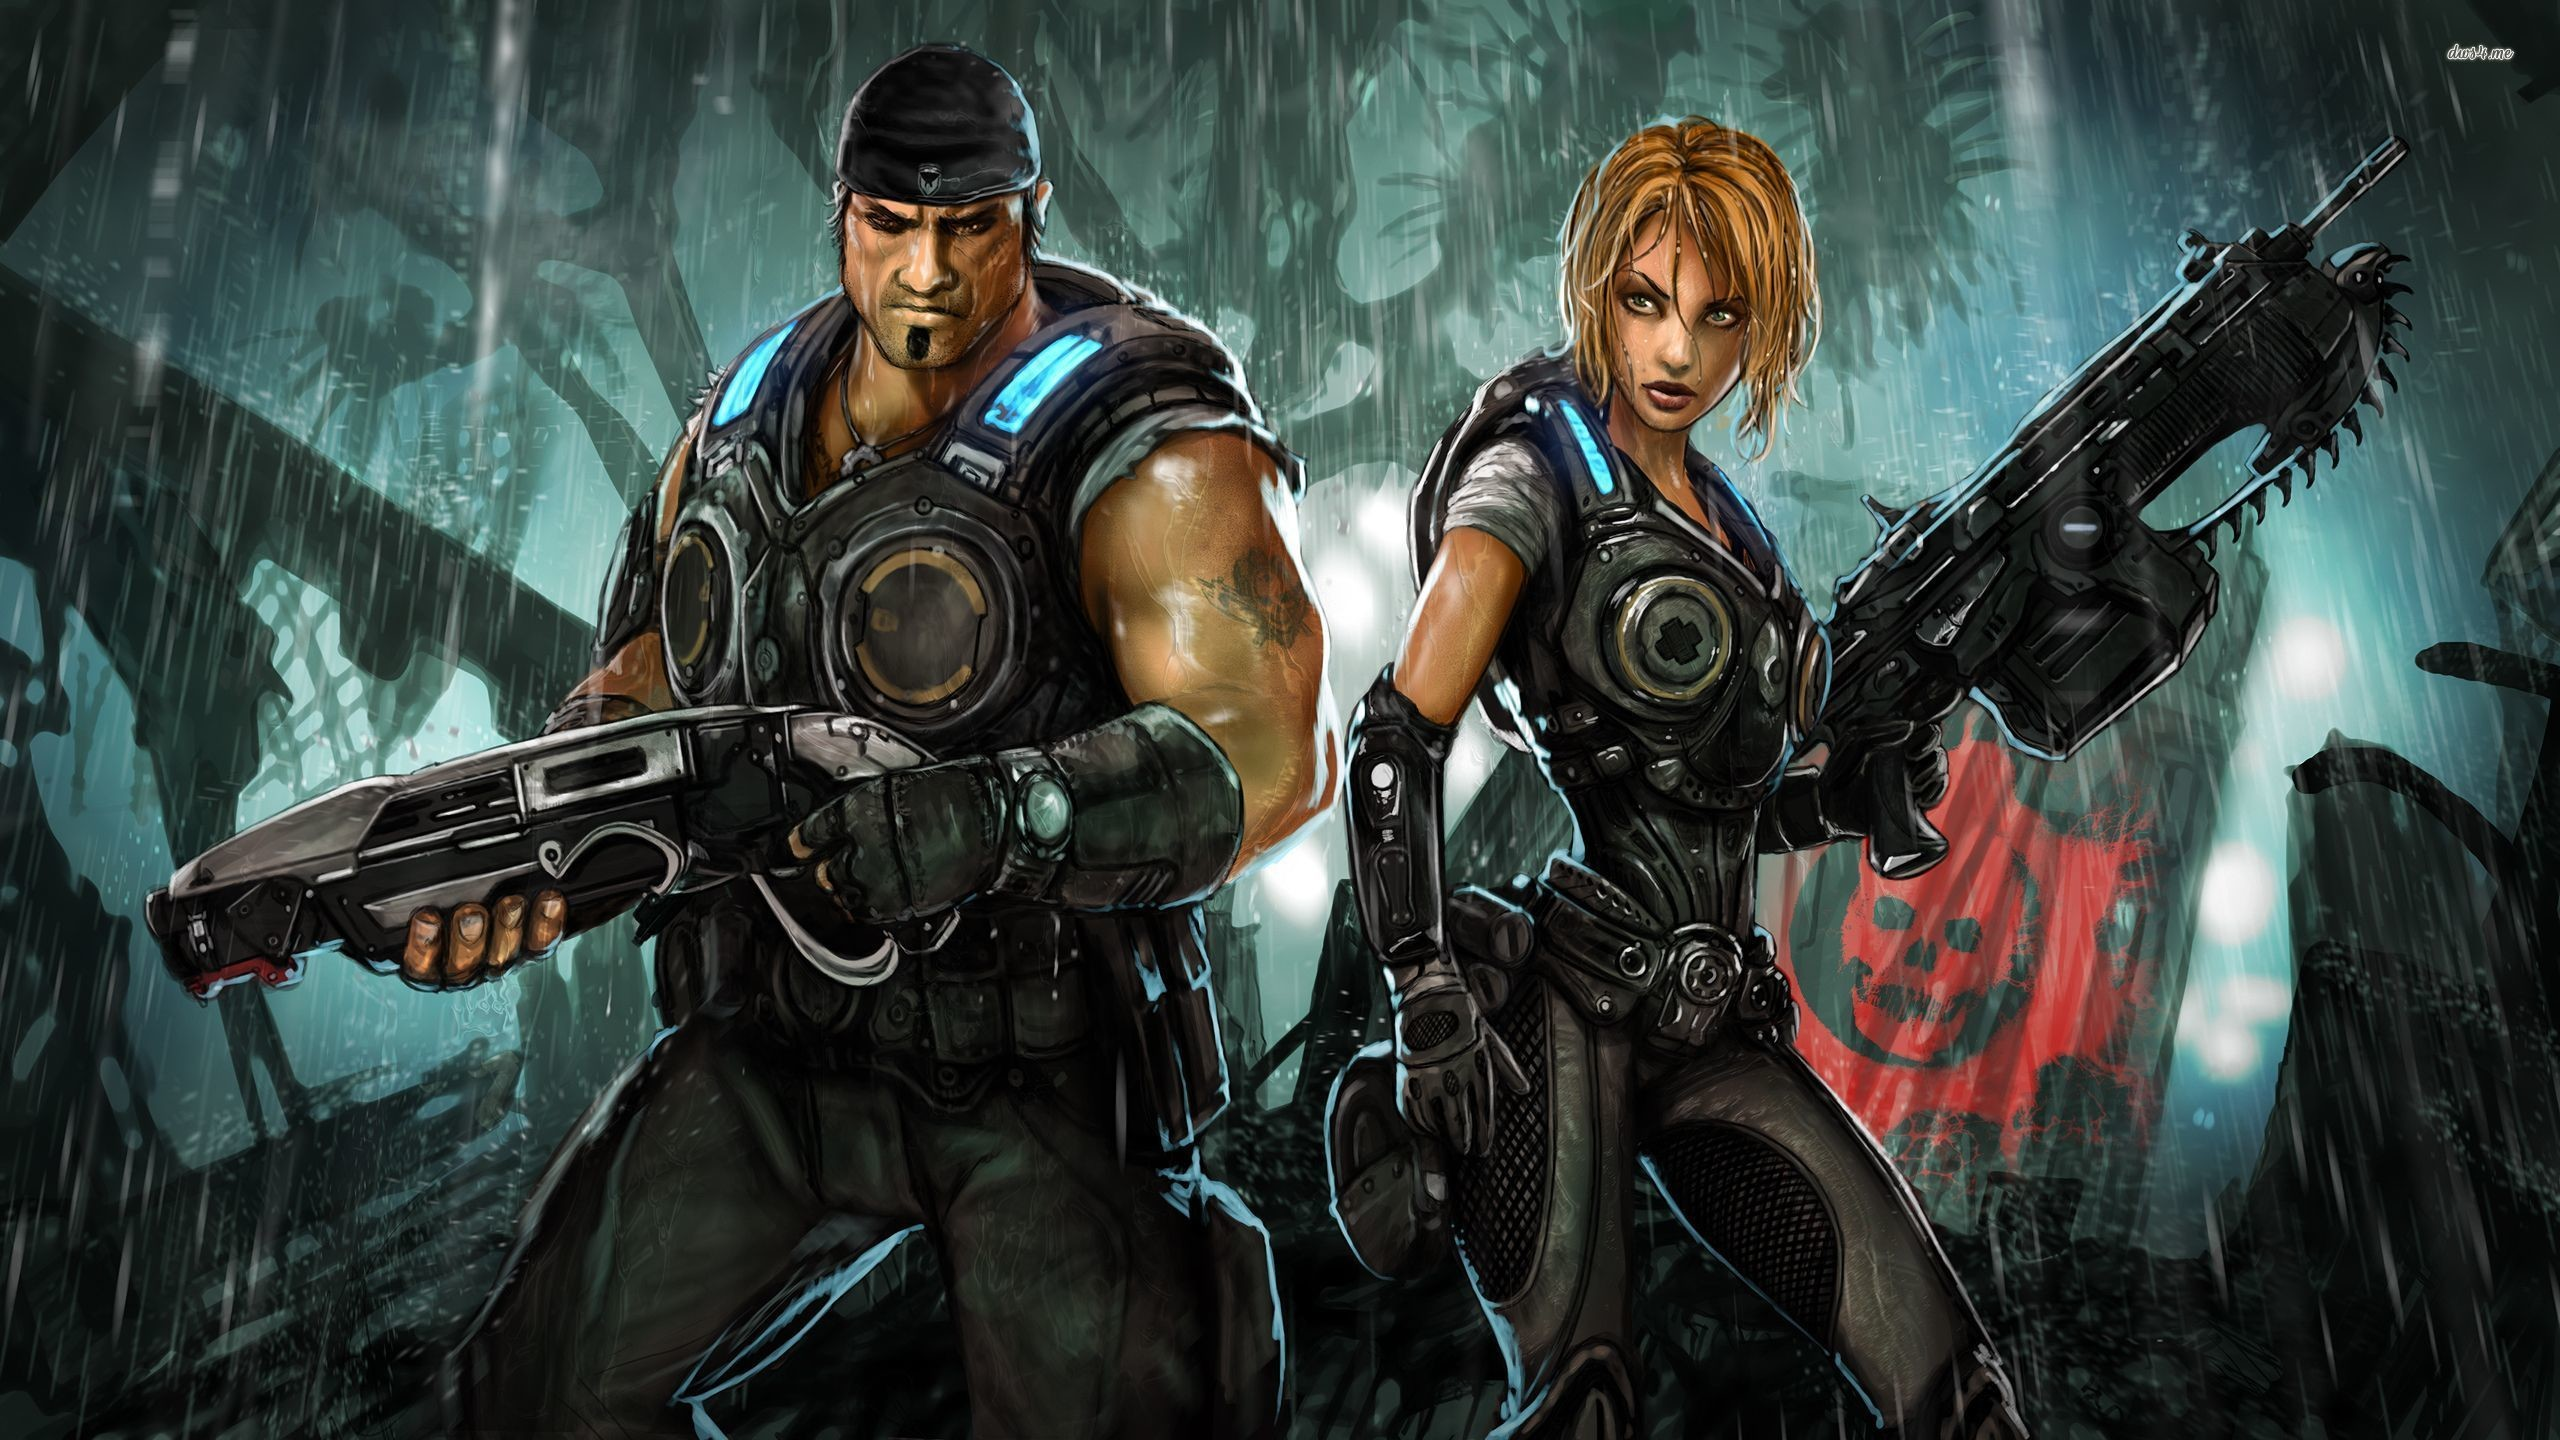 2560x1440 ... Marcus Fenix and Anya Stroud in Gears of War 3 wallpaper  ...